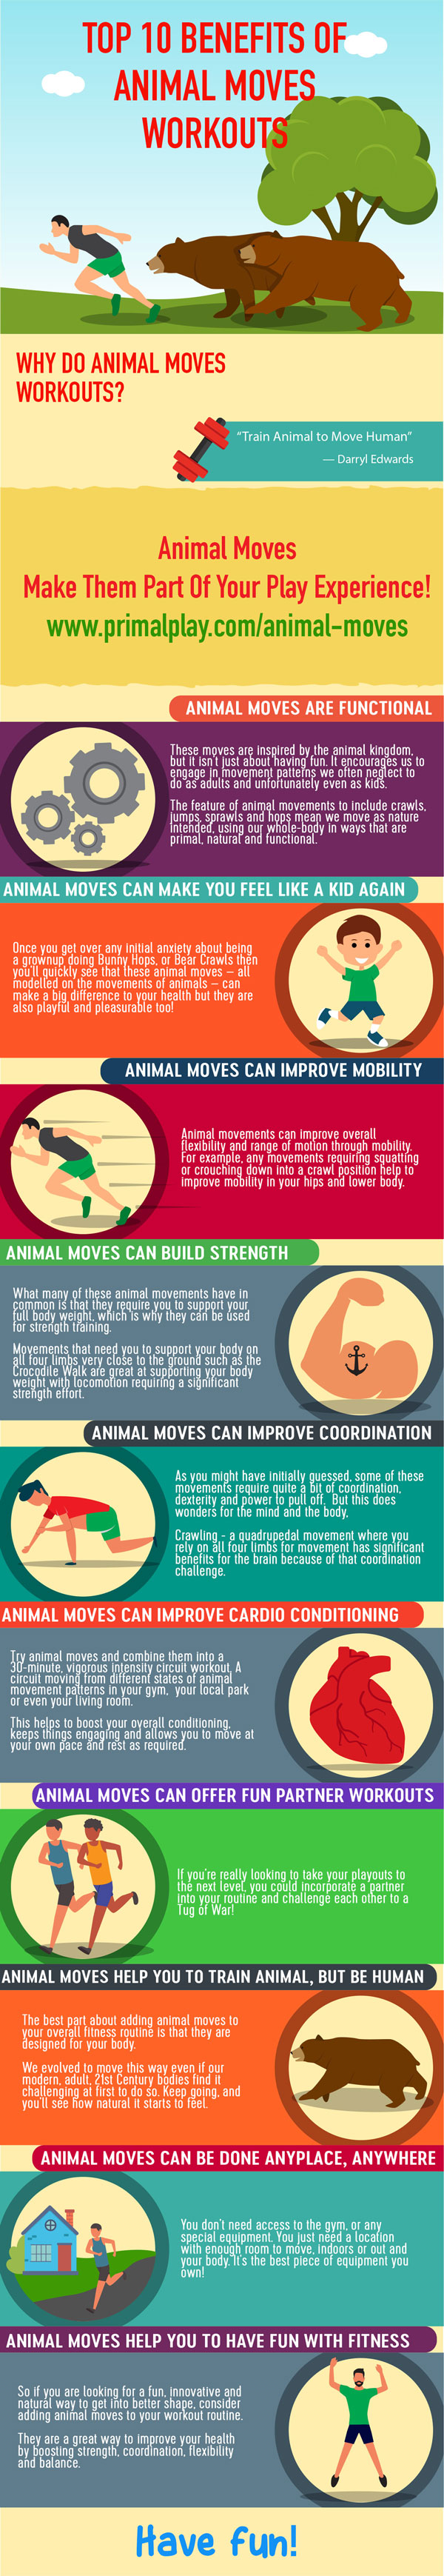 10 Benefits of Animal Moves Workouts